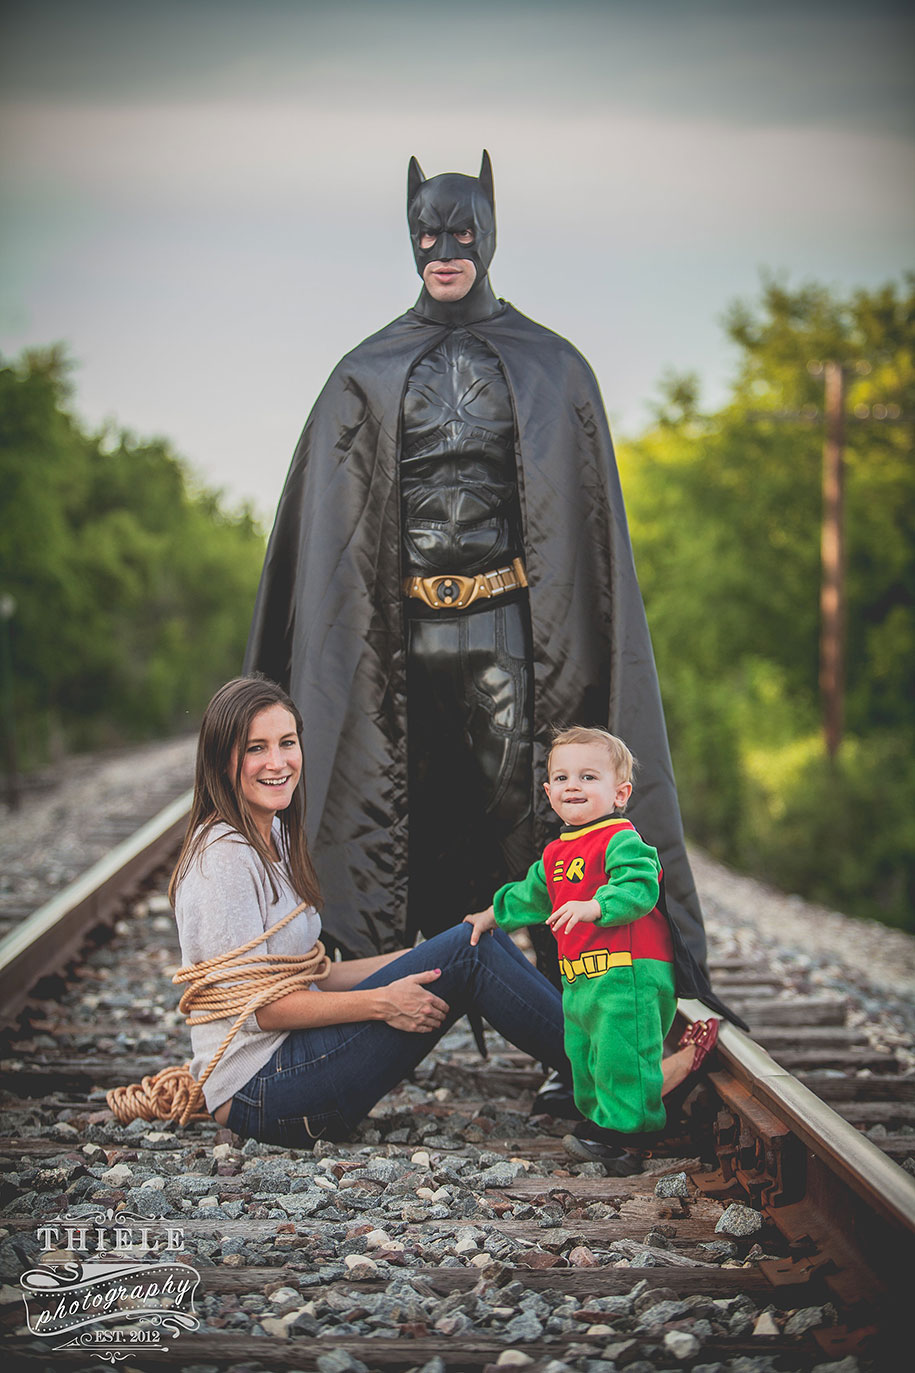 Creative Wife Organizes Batman And Robin Shoot For Her